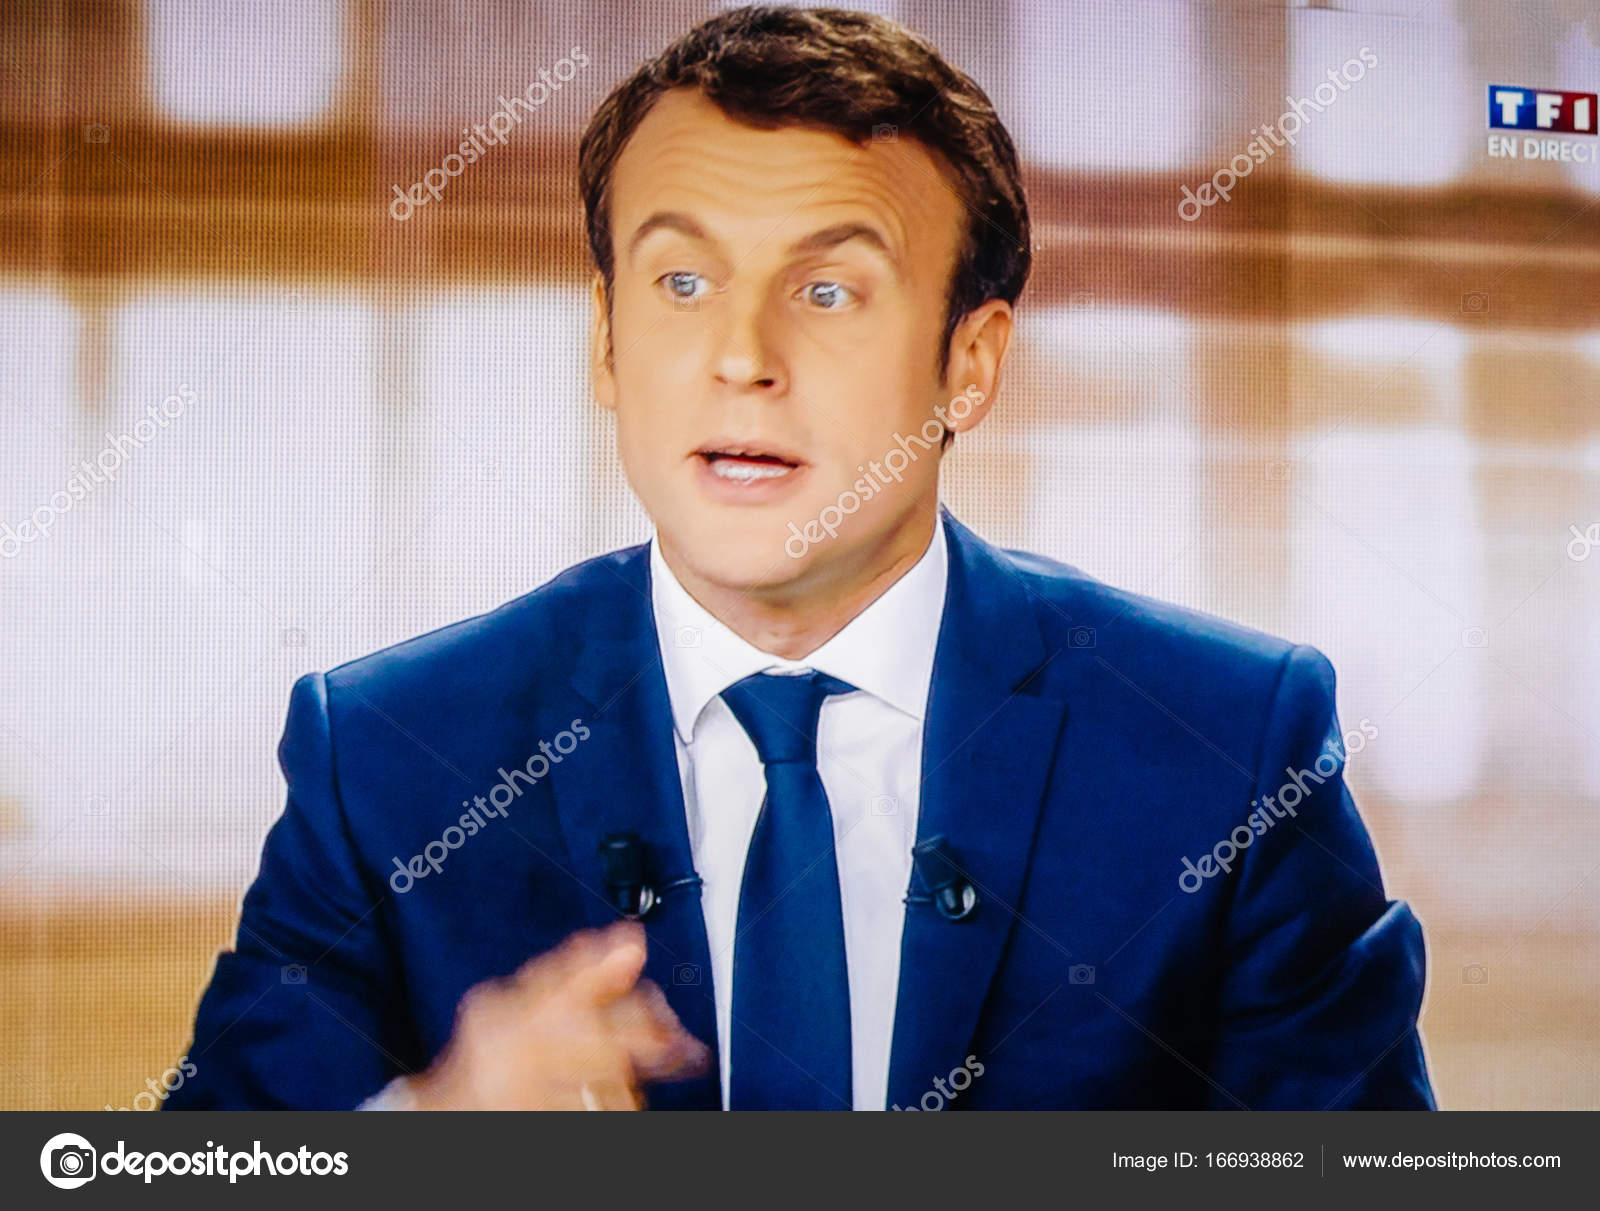 Emmanuel Macron debating live at French television with Marine Le